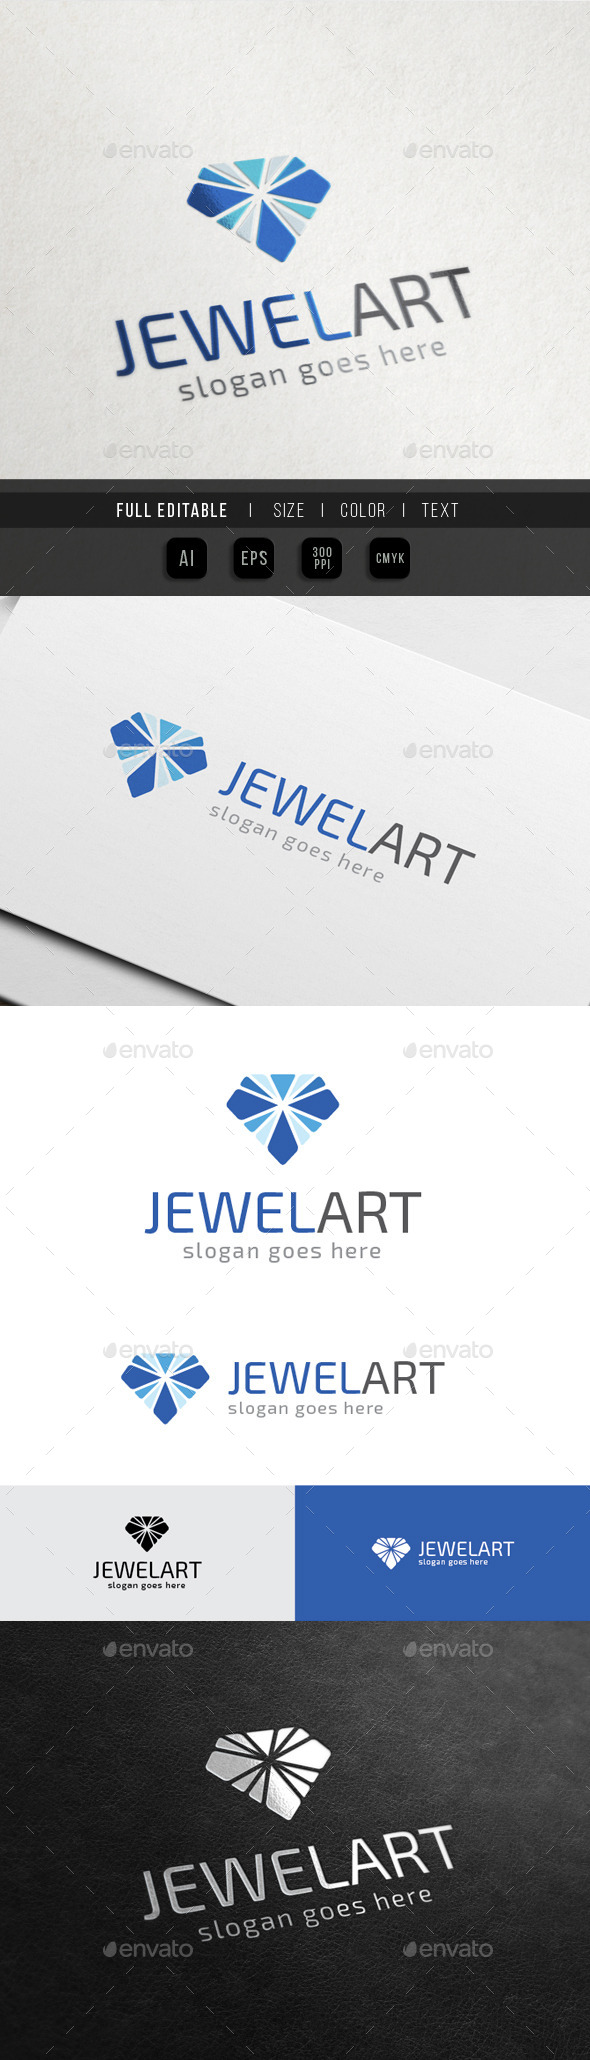 GraphicRiver Jewel Art Diamond Media 10493894